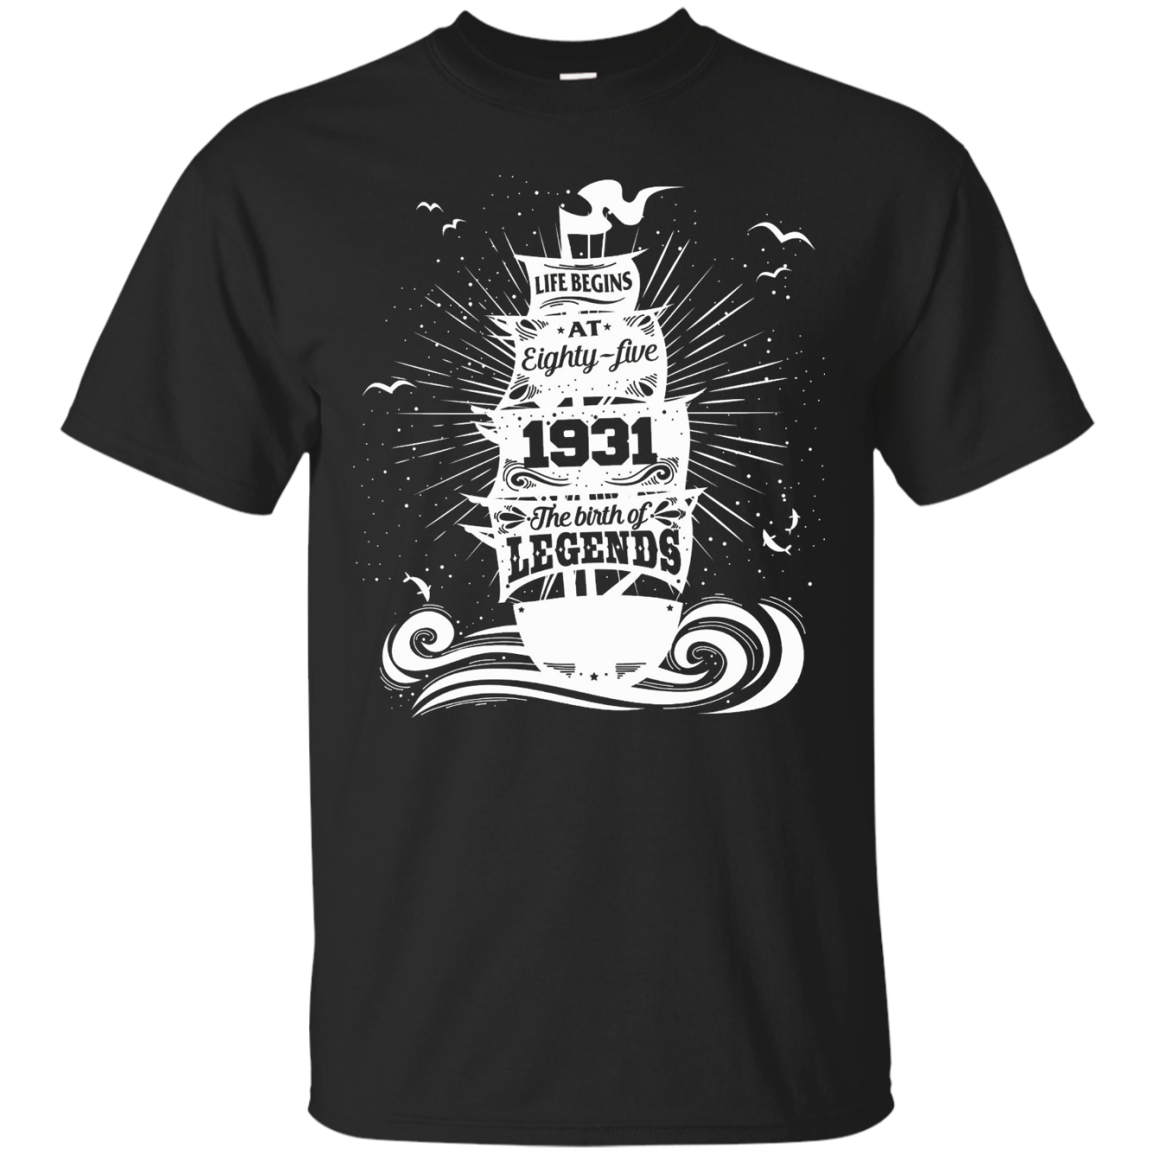 1931 Life Begins at Eighty-five, 1931 the birth of legends – T-Shirt